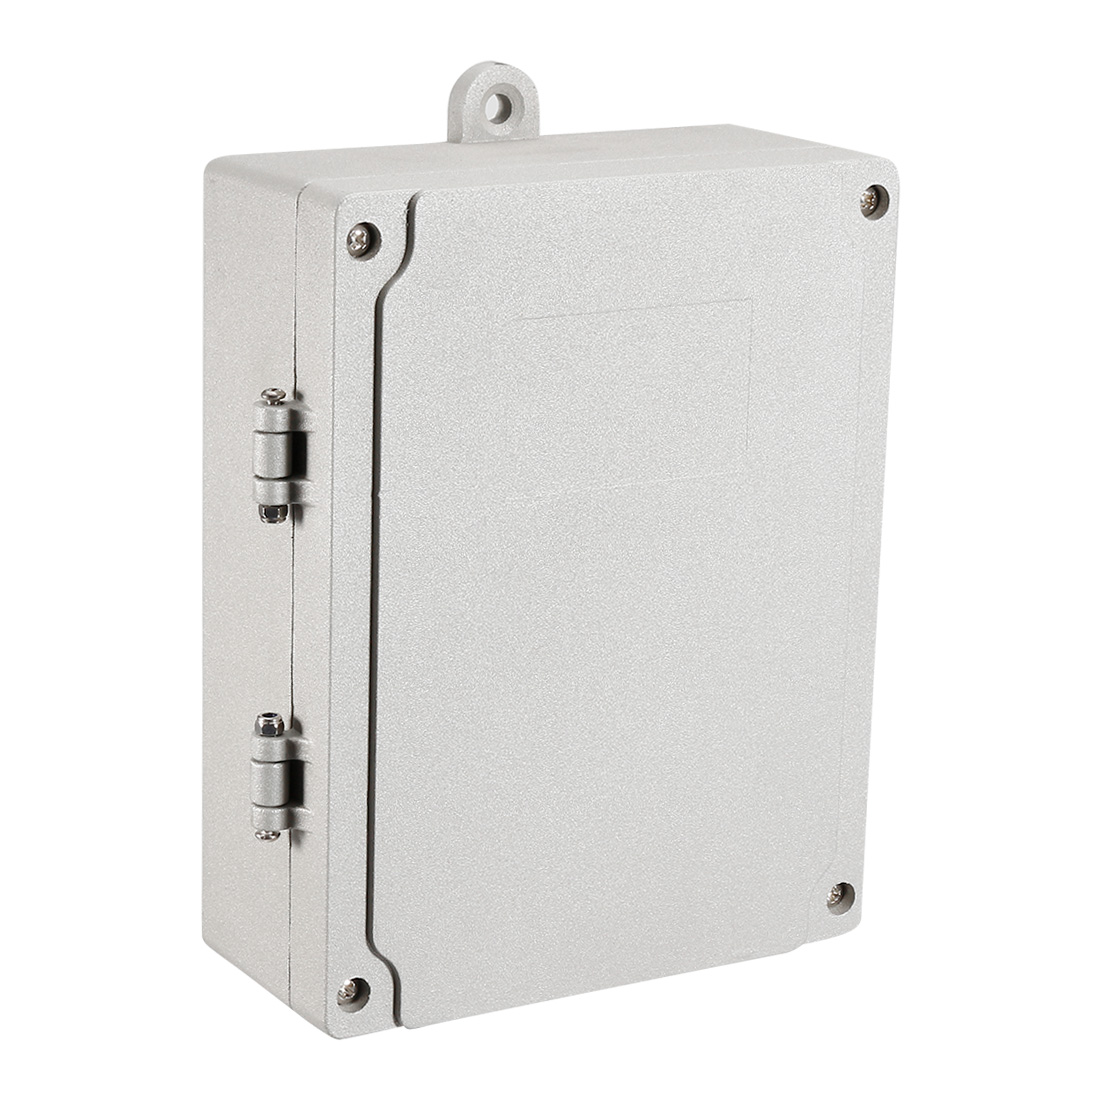 """7.1""""x5.5""""x2.2""""(180mmx140mmx55mm) Aluminum Clamshell Junction Box Universal Electric Project Enclosure w Two Horns"""